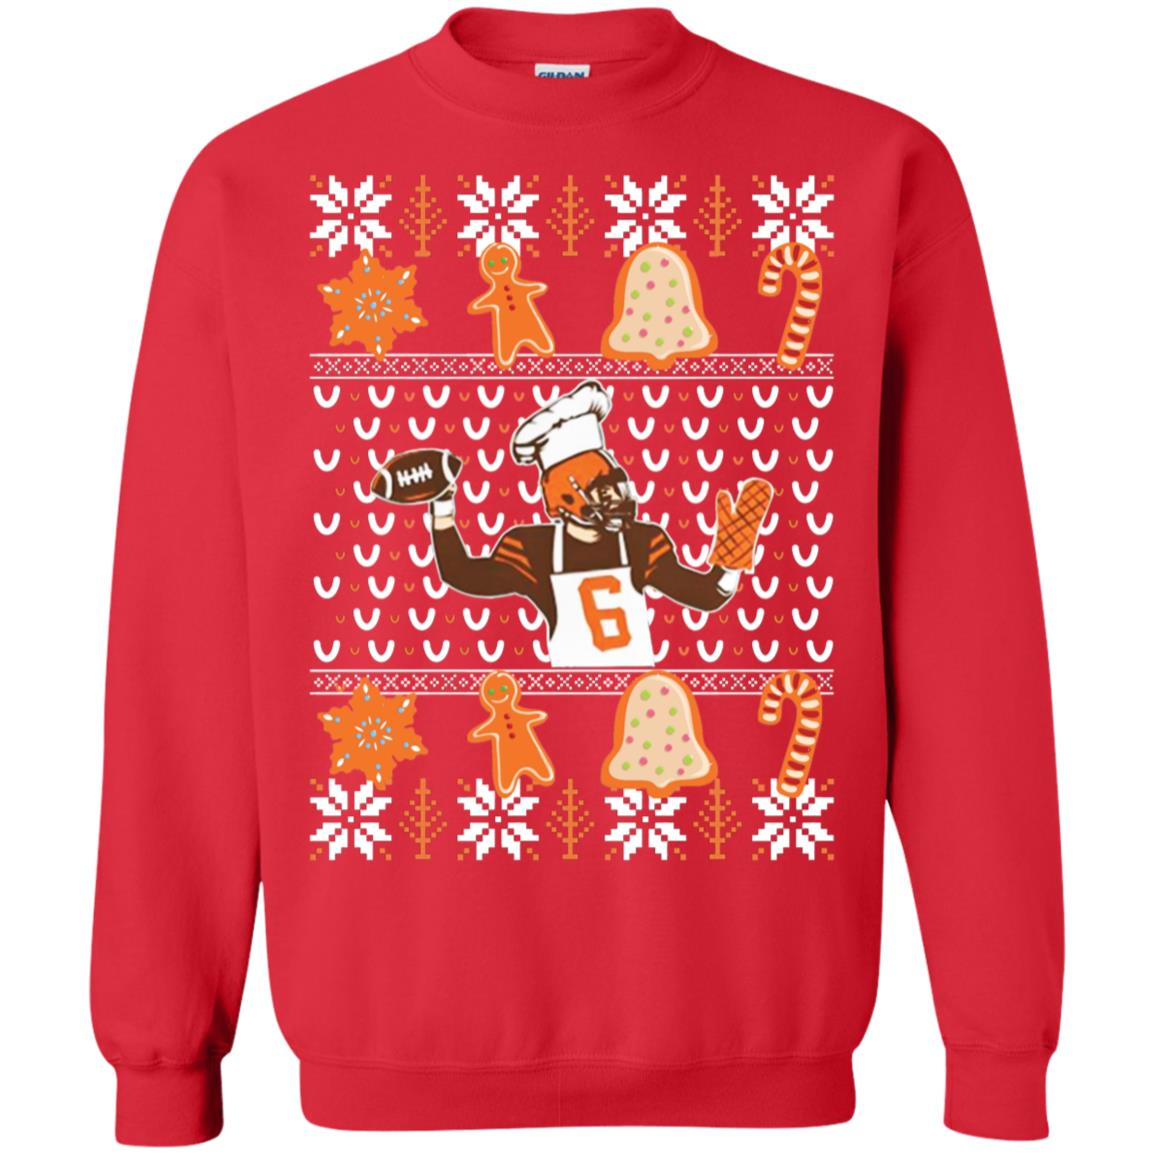 Baker Mayfield Christmas Shirt Sweatshirt Therockin